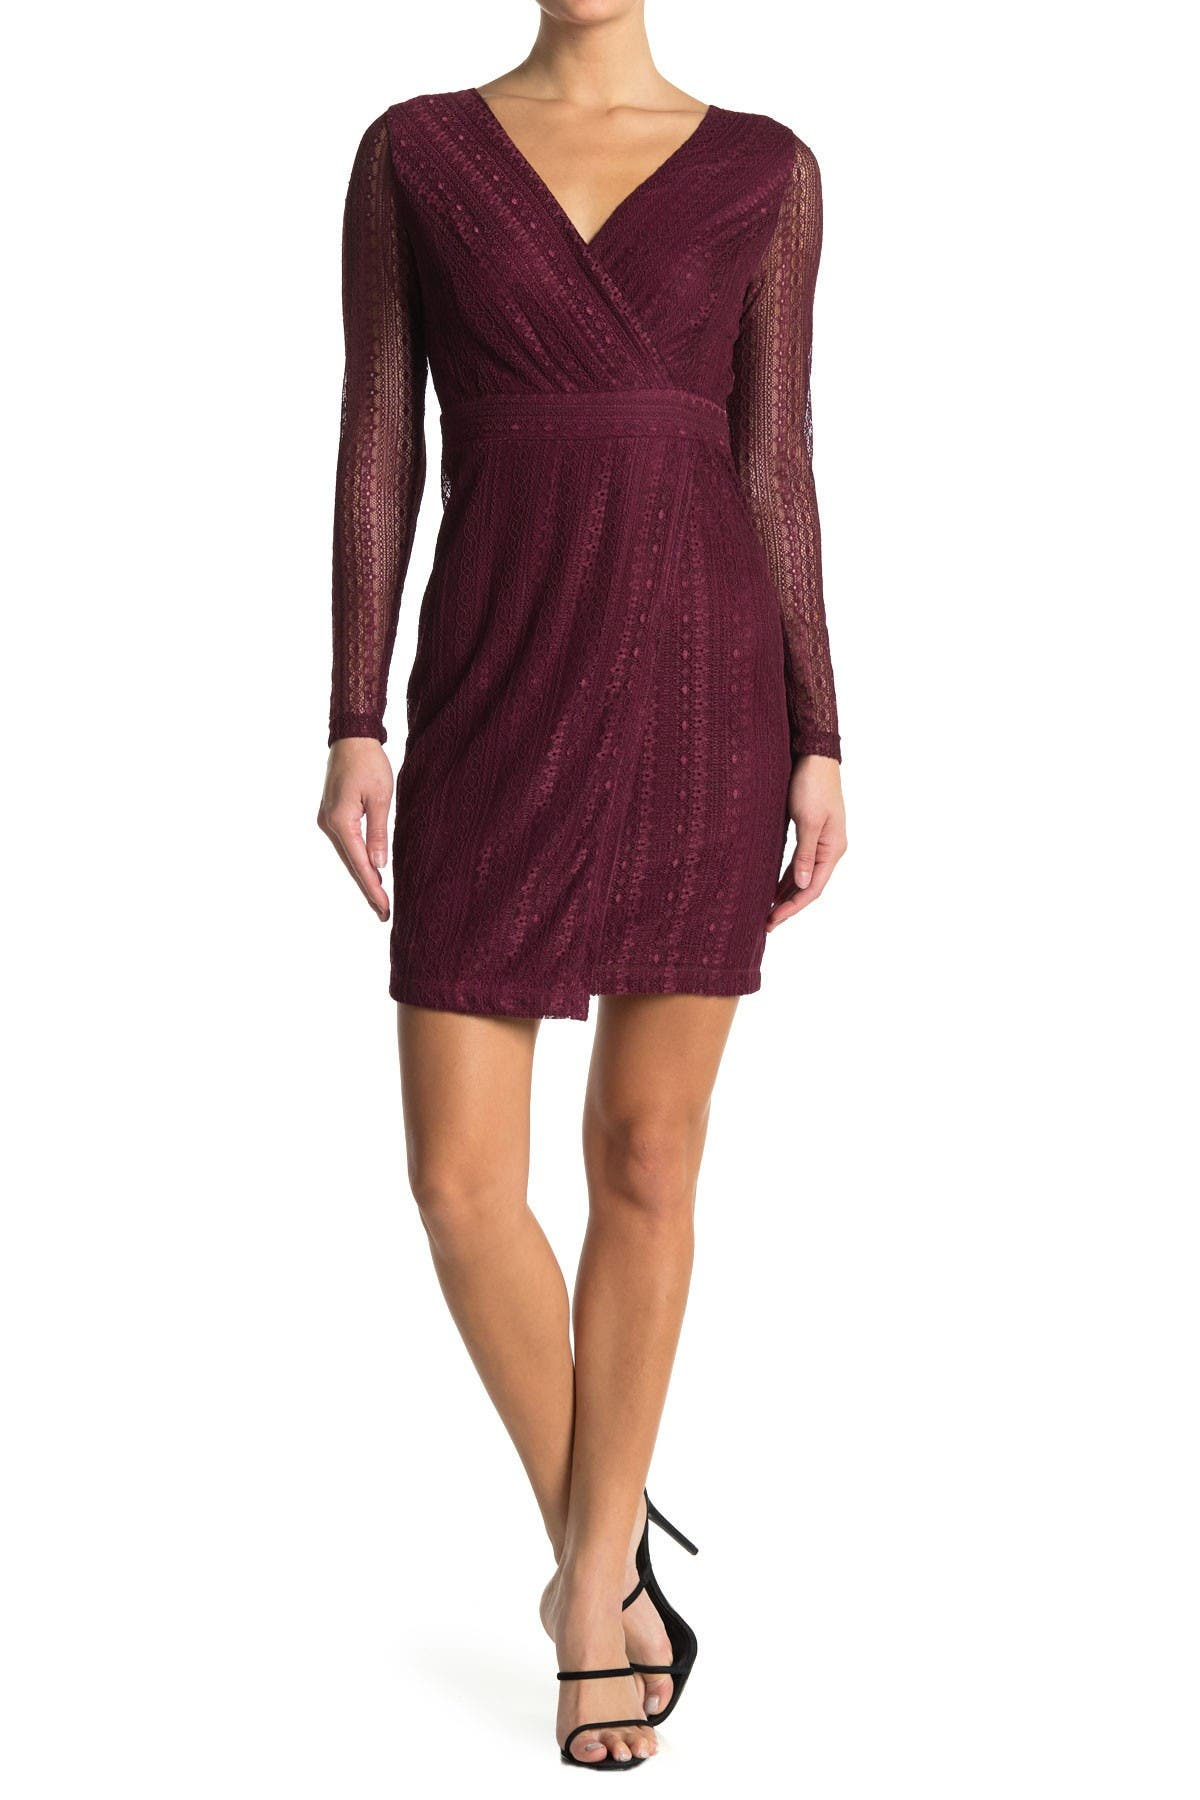 Image of GUESS Sheer Sleeve Lace Dress